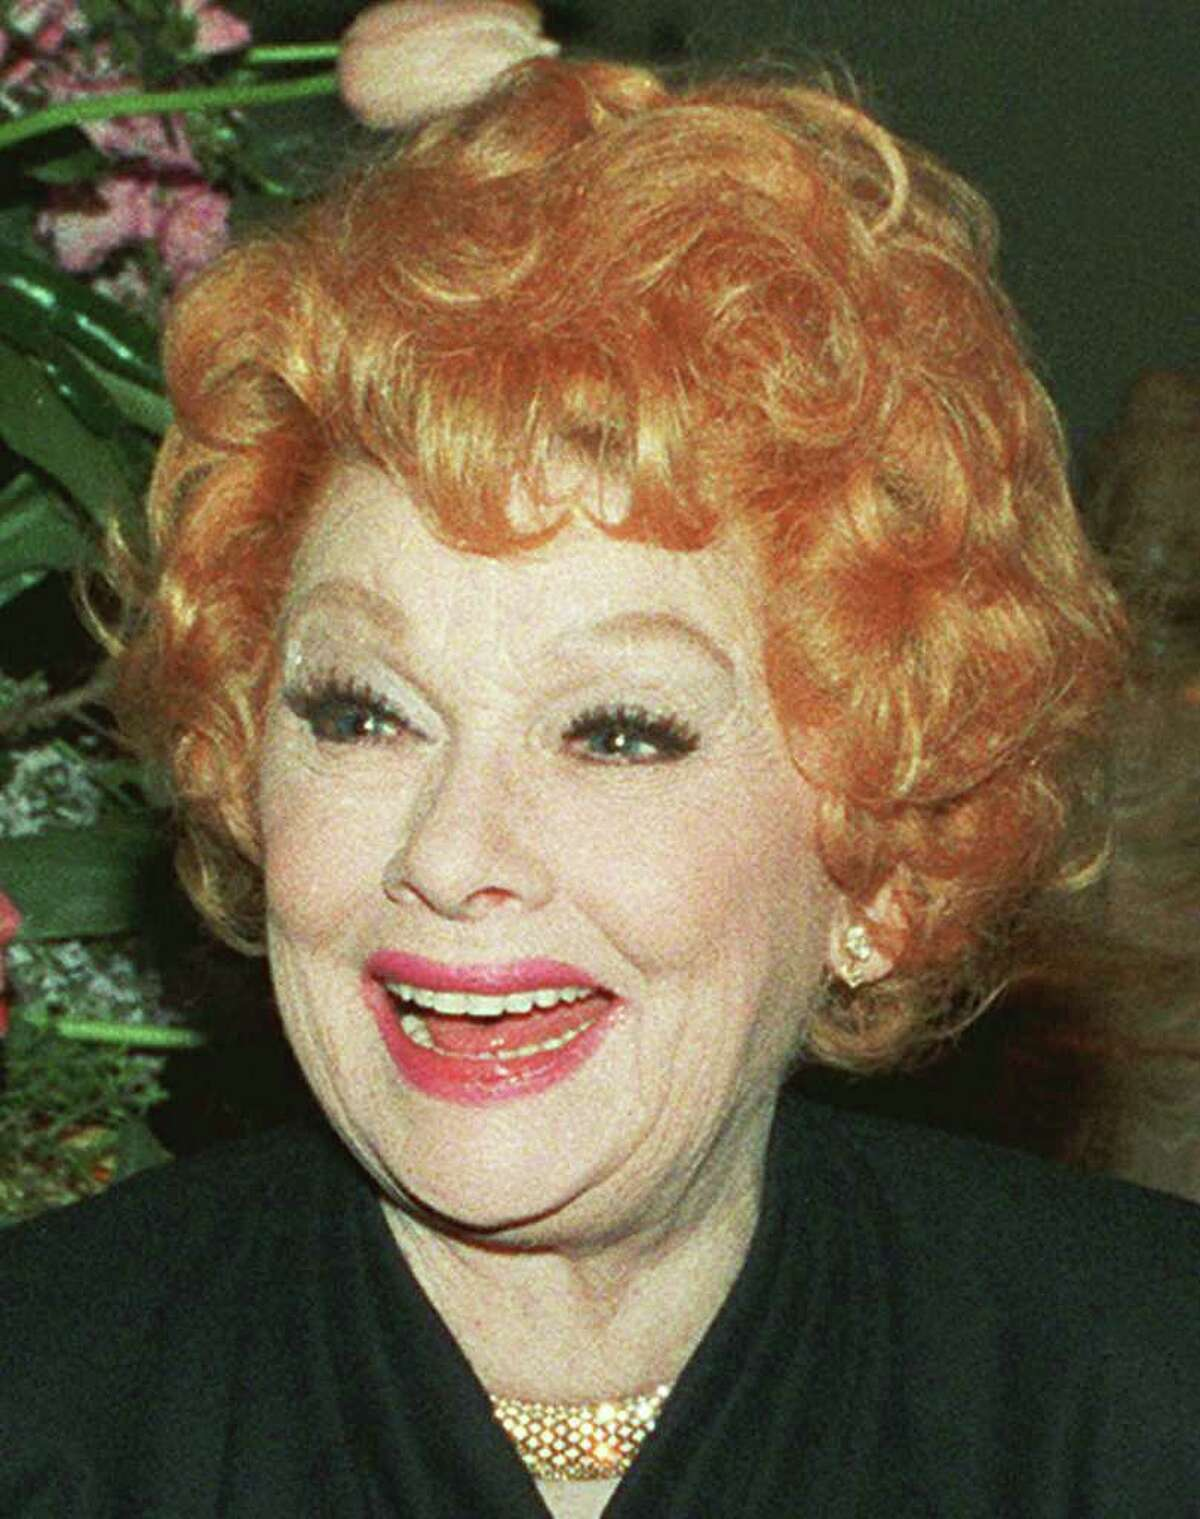 FILE---Actress Lucille Ball shown here in this March 4, 1987 file photo. Ball was nominated by the American Film Institute as one of the 50 greatest American film legends of the 20th century, Tuesday, Jan. 12, 1999. (AP Photo/File/Alison Wise/FILE) HOUCHRON CAPTION (11/04/1999)(11/14/2000)(03/20/2002): Ball.